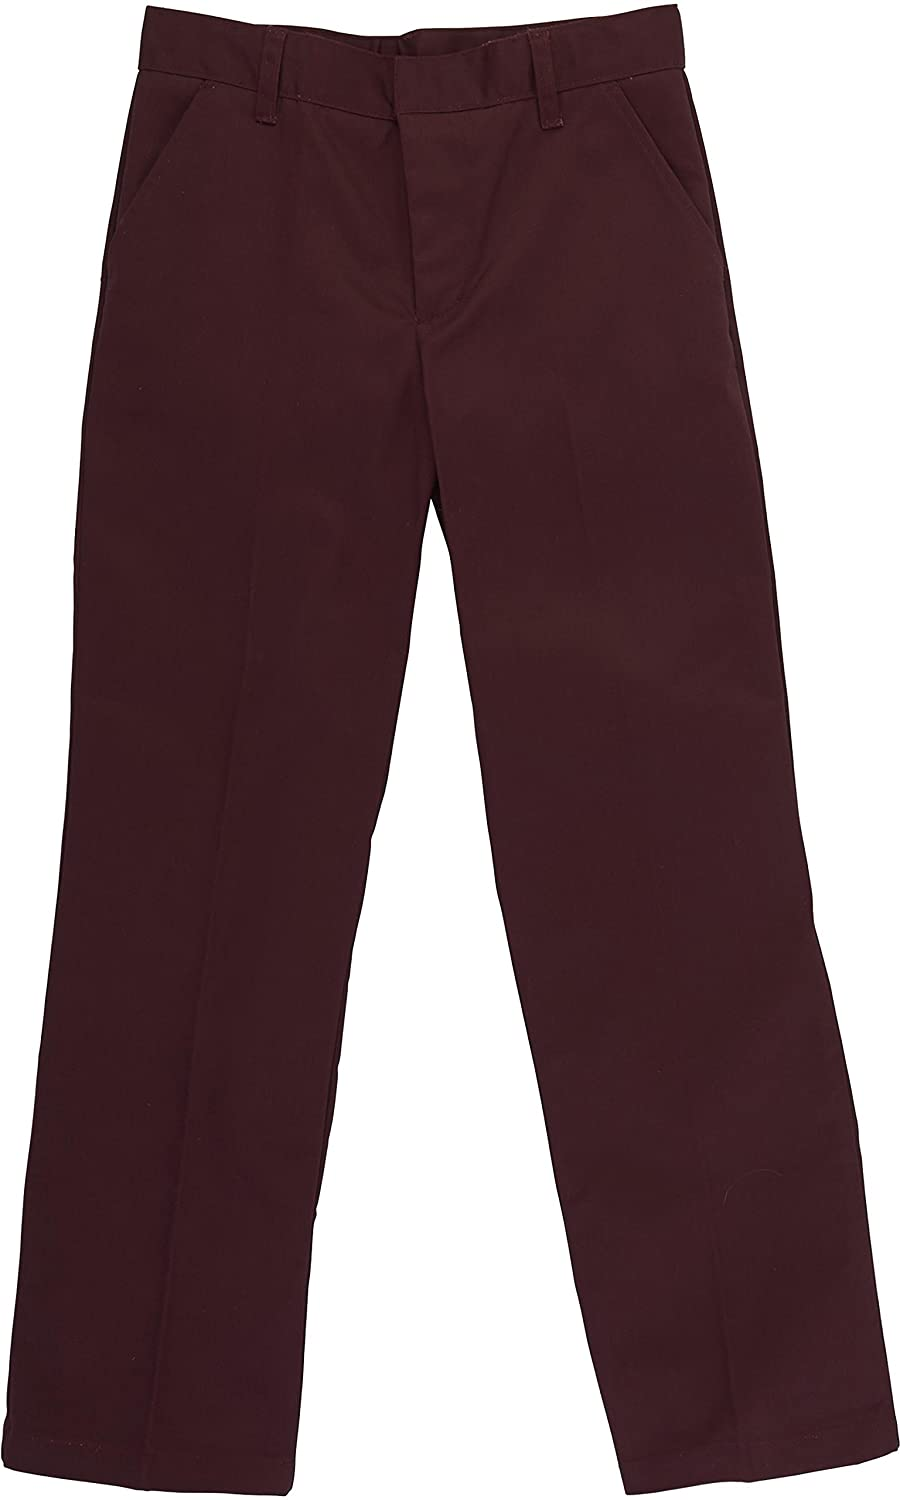 Burgundy 16 Husky French Toast School Uniform Boys Adjustable Waist Flat Front Workwear Finish Double Knee Pants